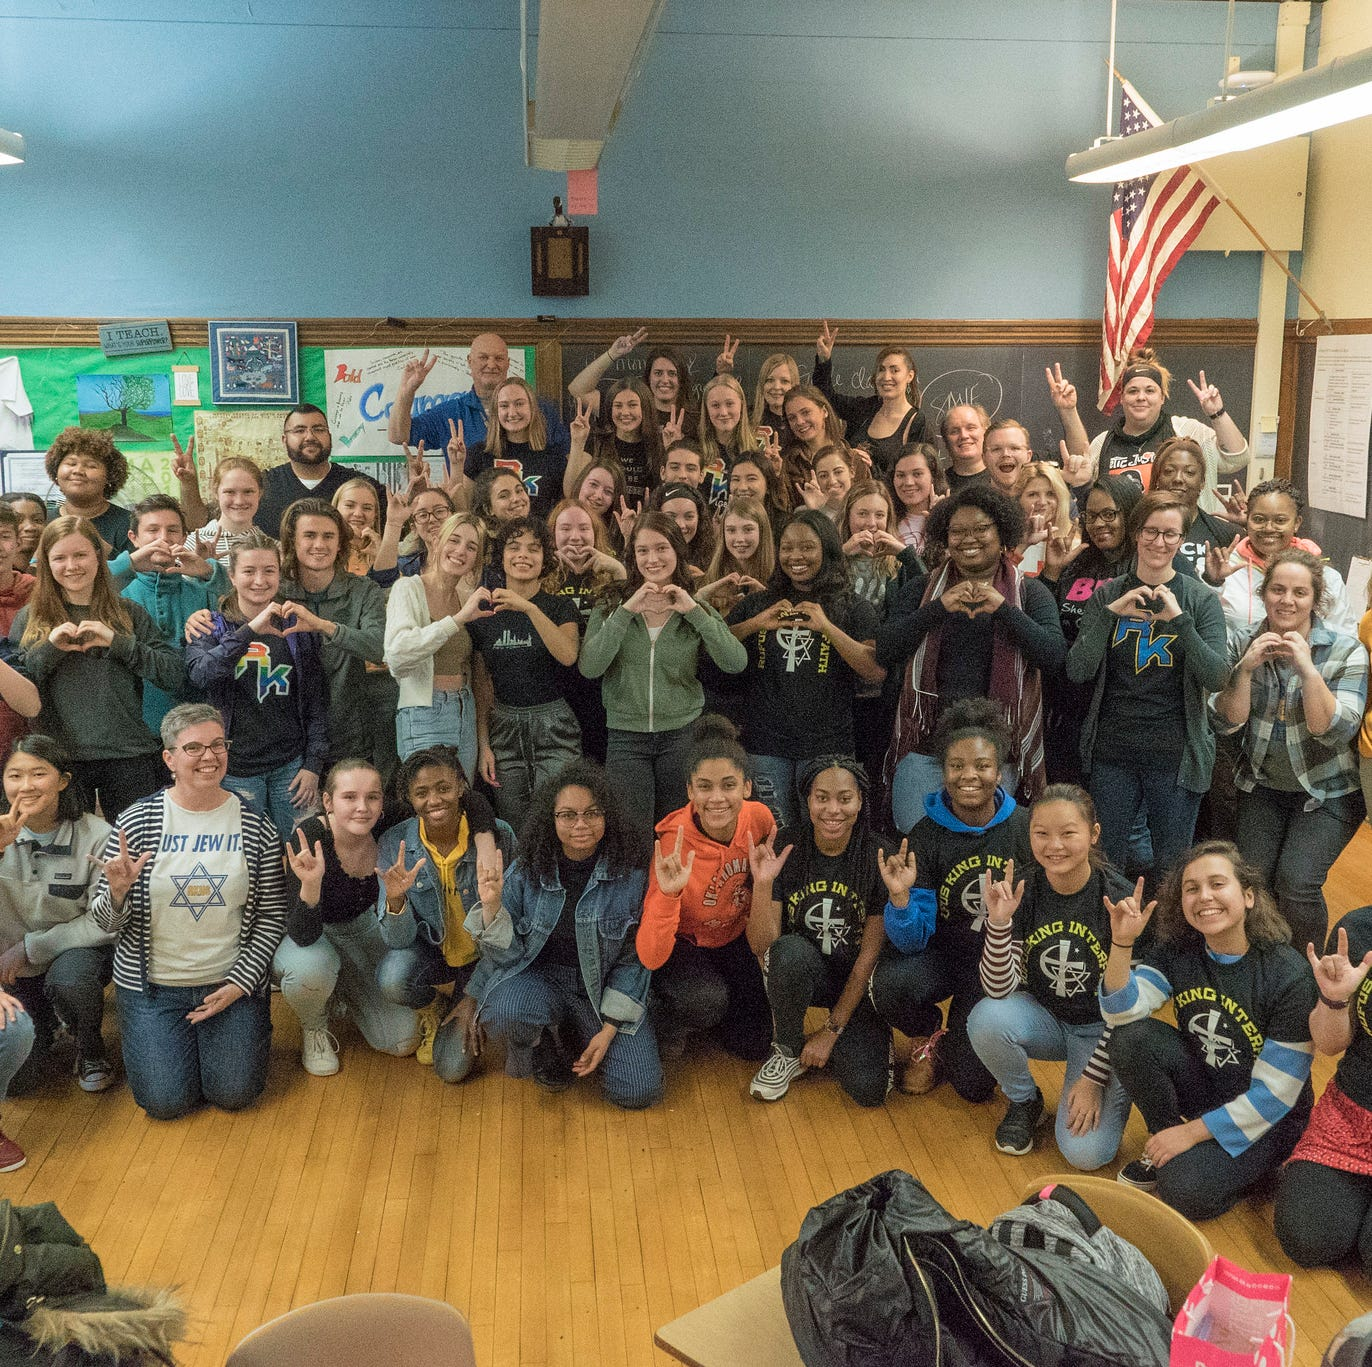 In response to Nazi salute photo from Baraboo, one Milwaukee high school wants to spread a message of love